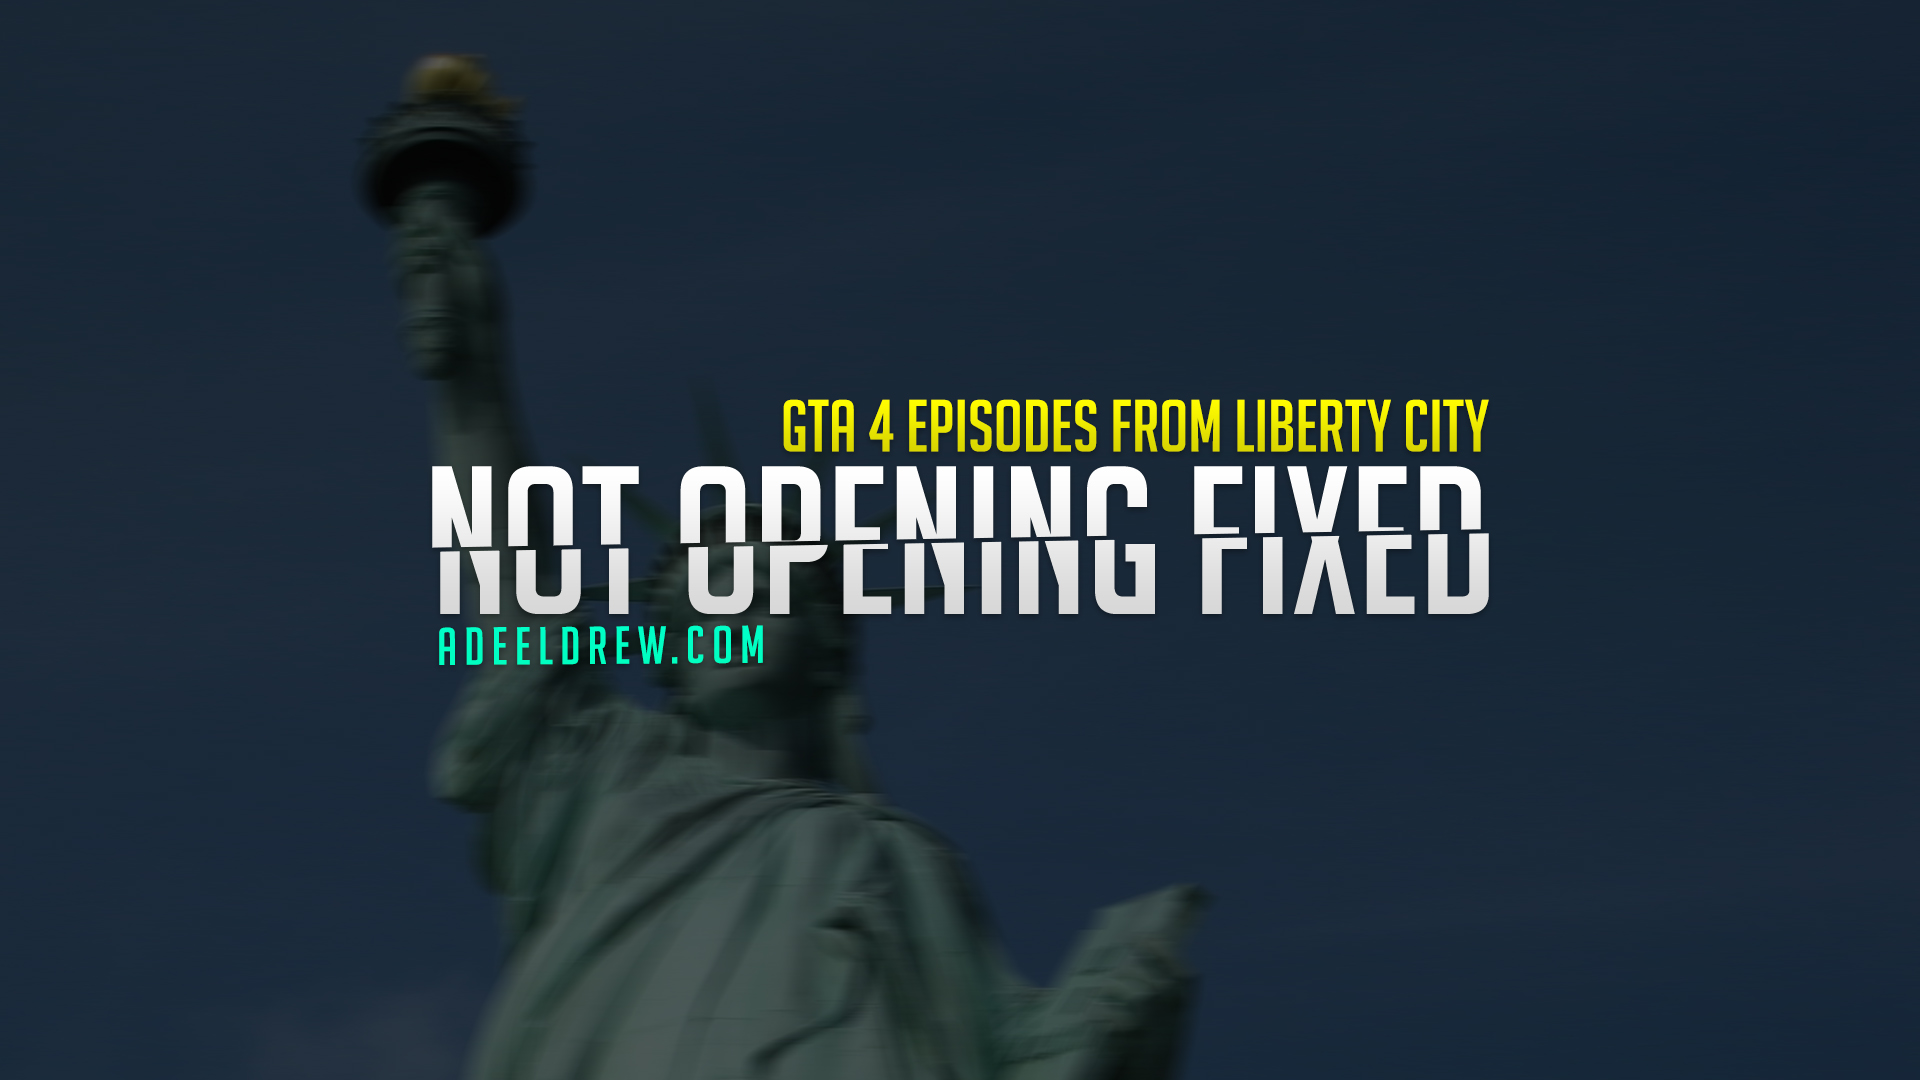 How to Fix GTA 4 Complete Edition Not Opening Problem Solved   How to Fix Grand Theft Auto IV Episodes from Liberty City Not Launching Error by AdeelDrew.